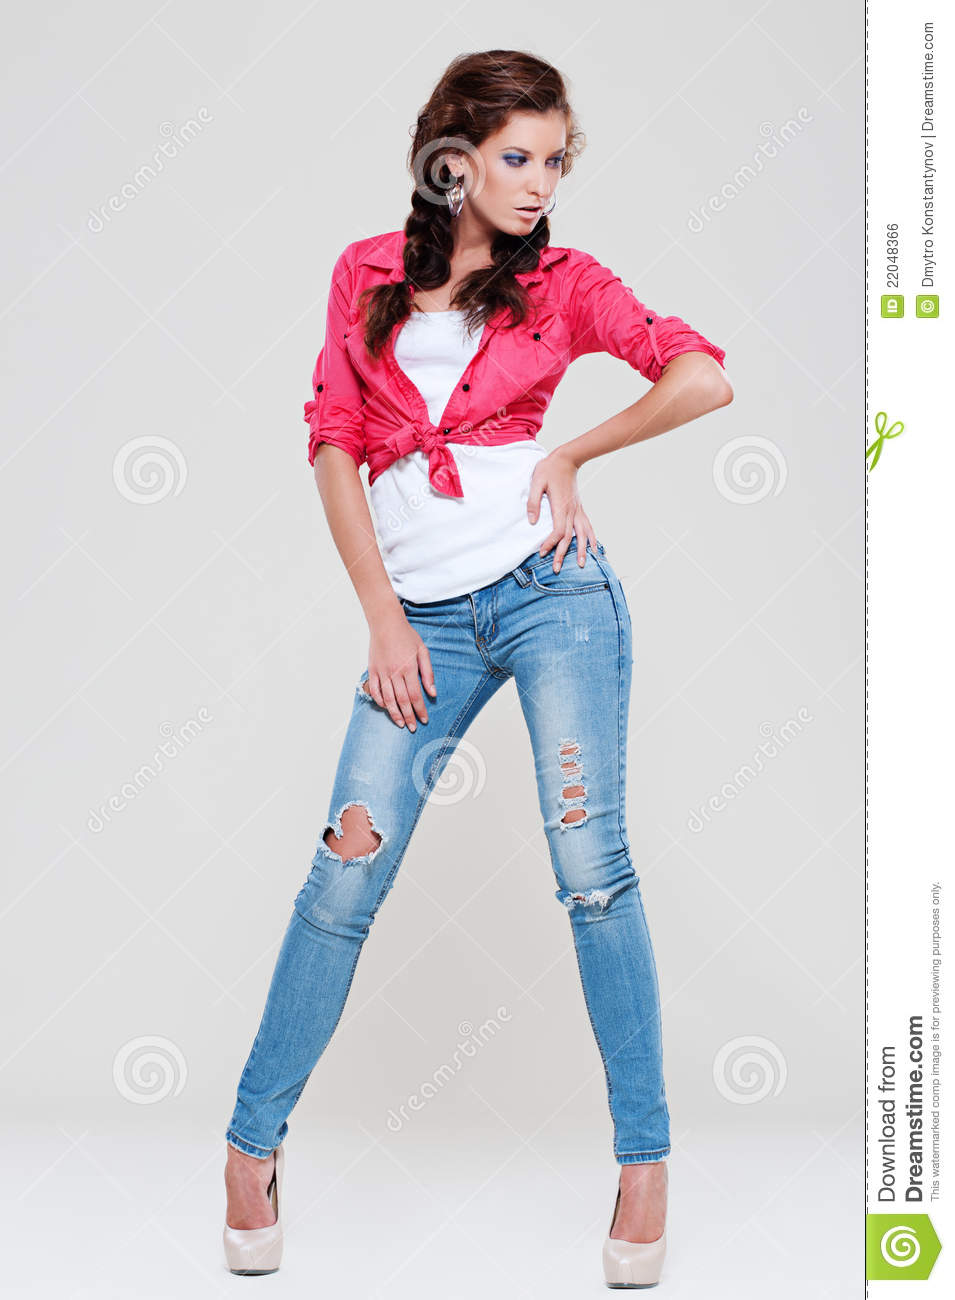 Woman In Blue Jeans And Red Shirt Royalty Free Stock Image - Image ...